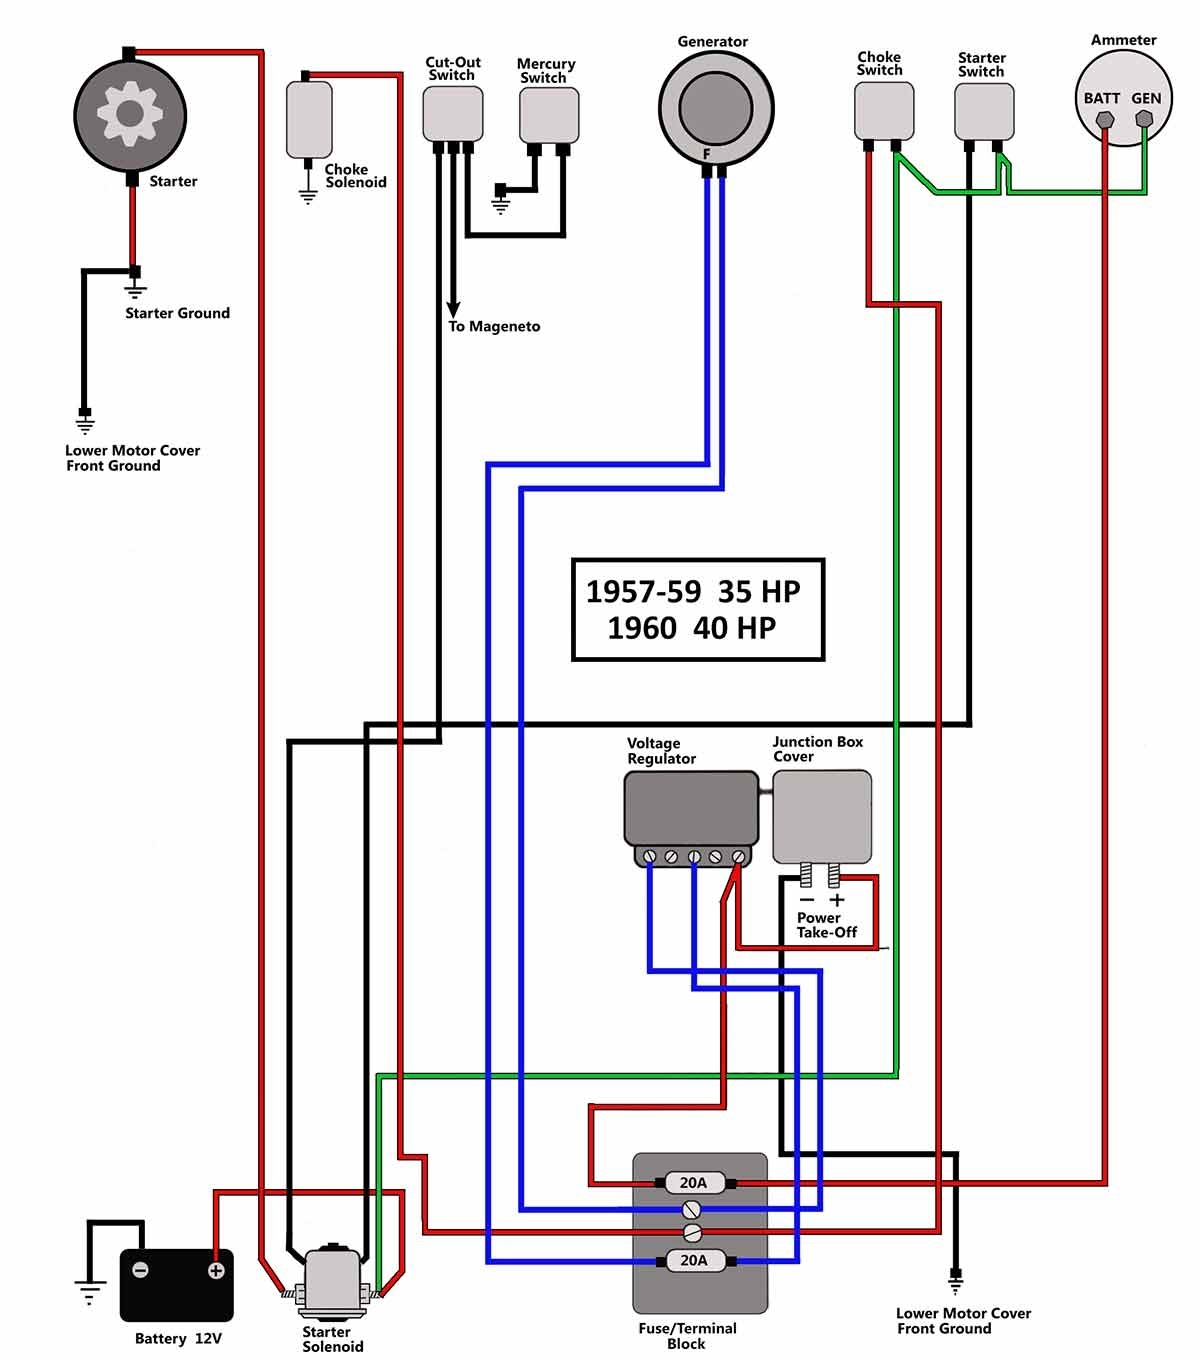 vdo gauges wiring diagrams and boat tach diagram e z go golf cart for boat gauge wiring diagram for tachometer?resize\=665%2C755\&ssl\=1 vdo gauge wiring diagram boat vdo wiring diagrams vdo fuel sender wiring diagram at suagrazia.org